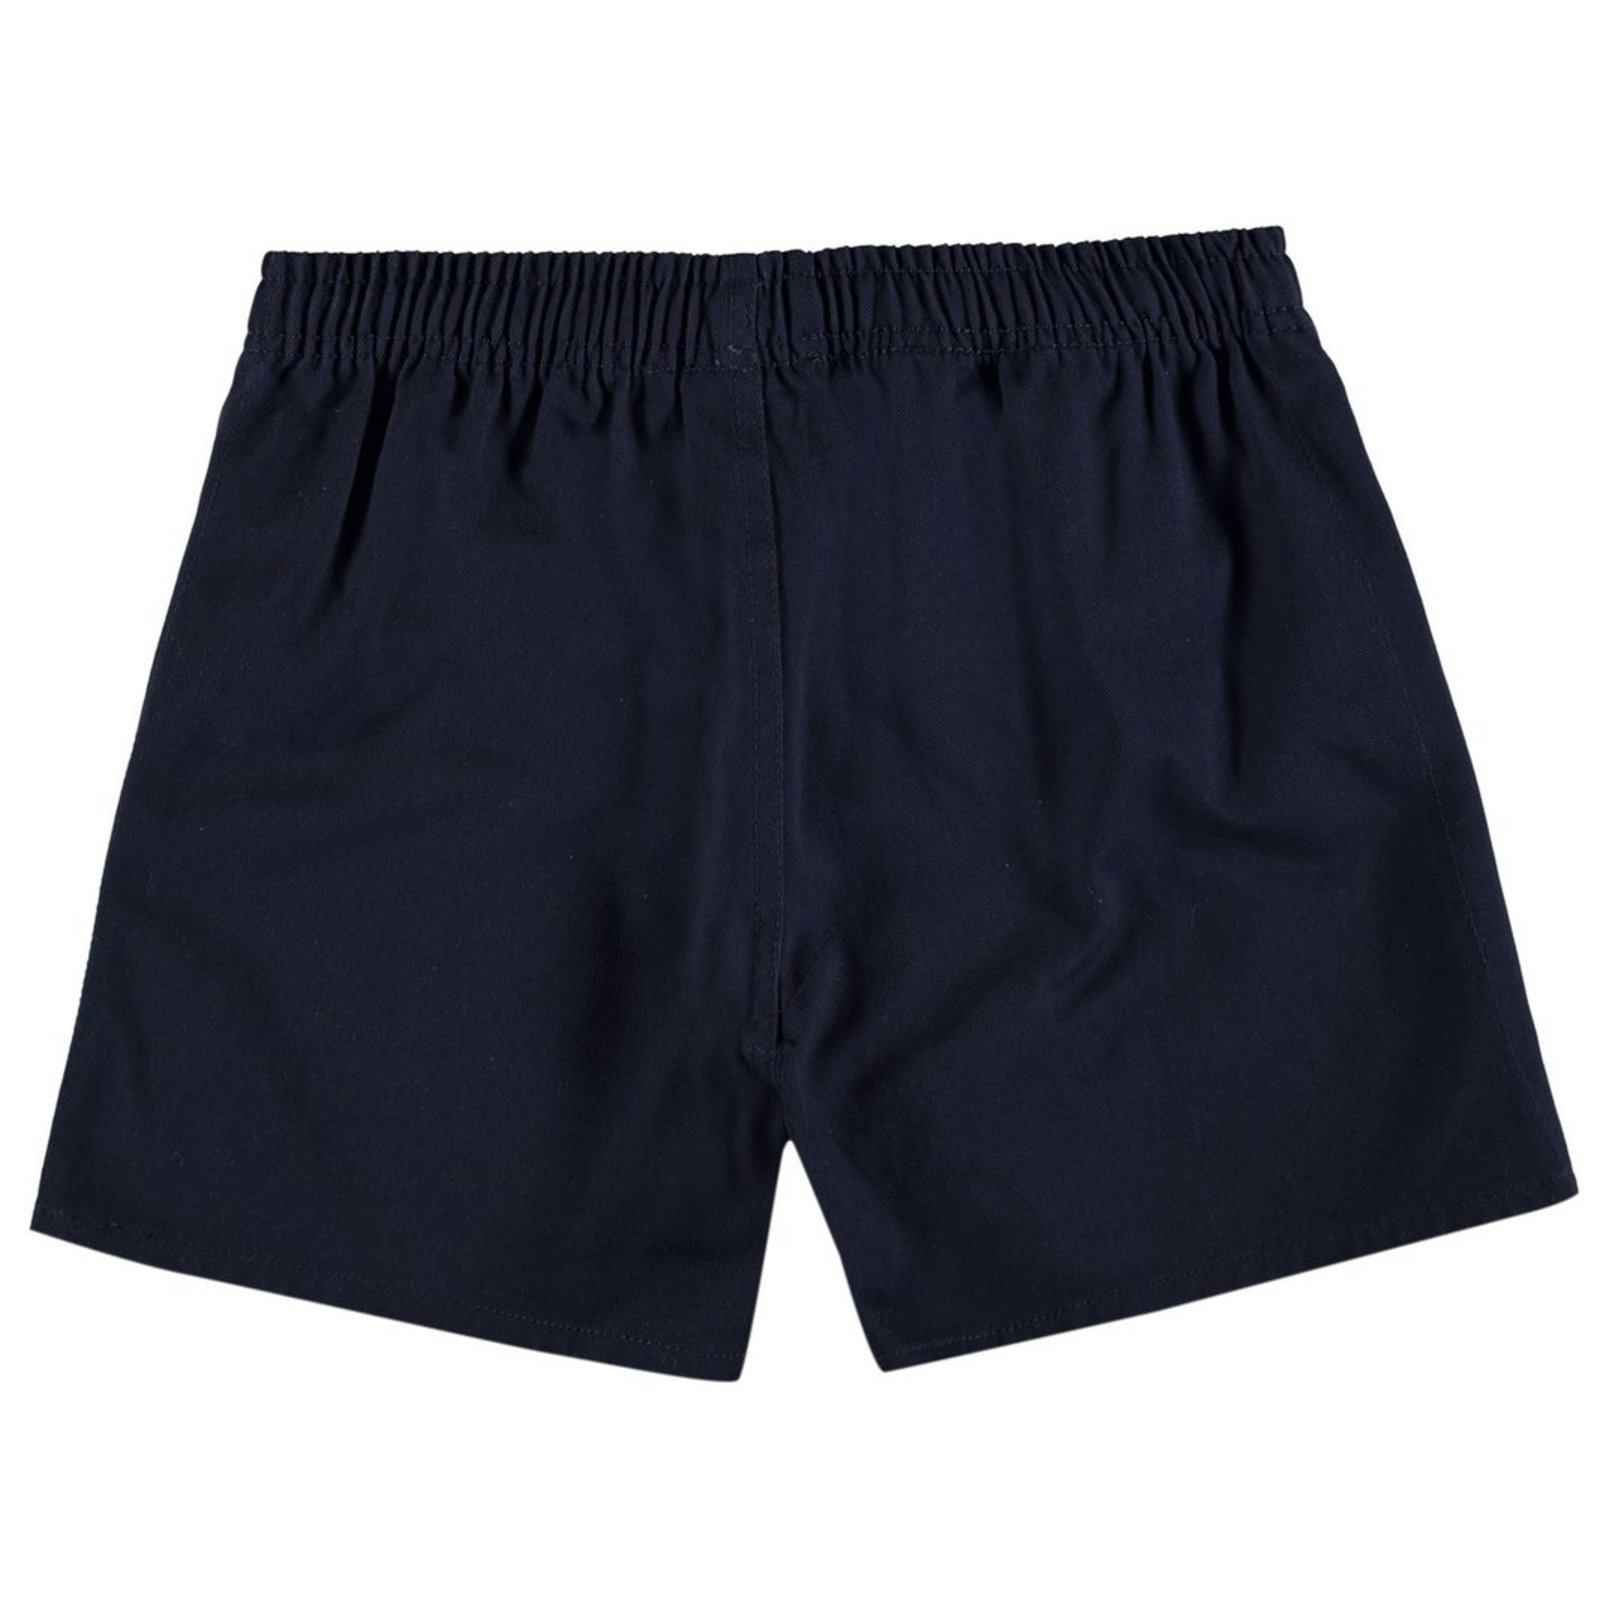 Canterbury Mens Professional Youth Cotton Rugby Shorts Pants Sports Training